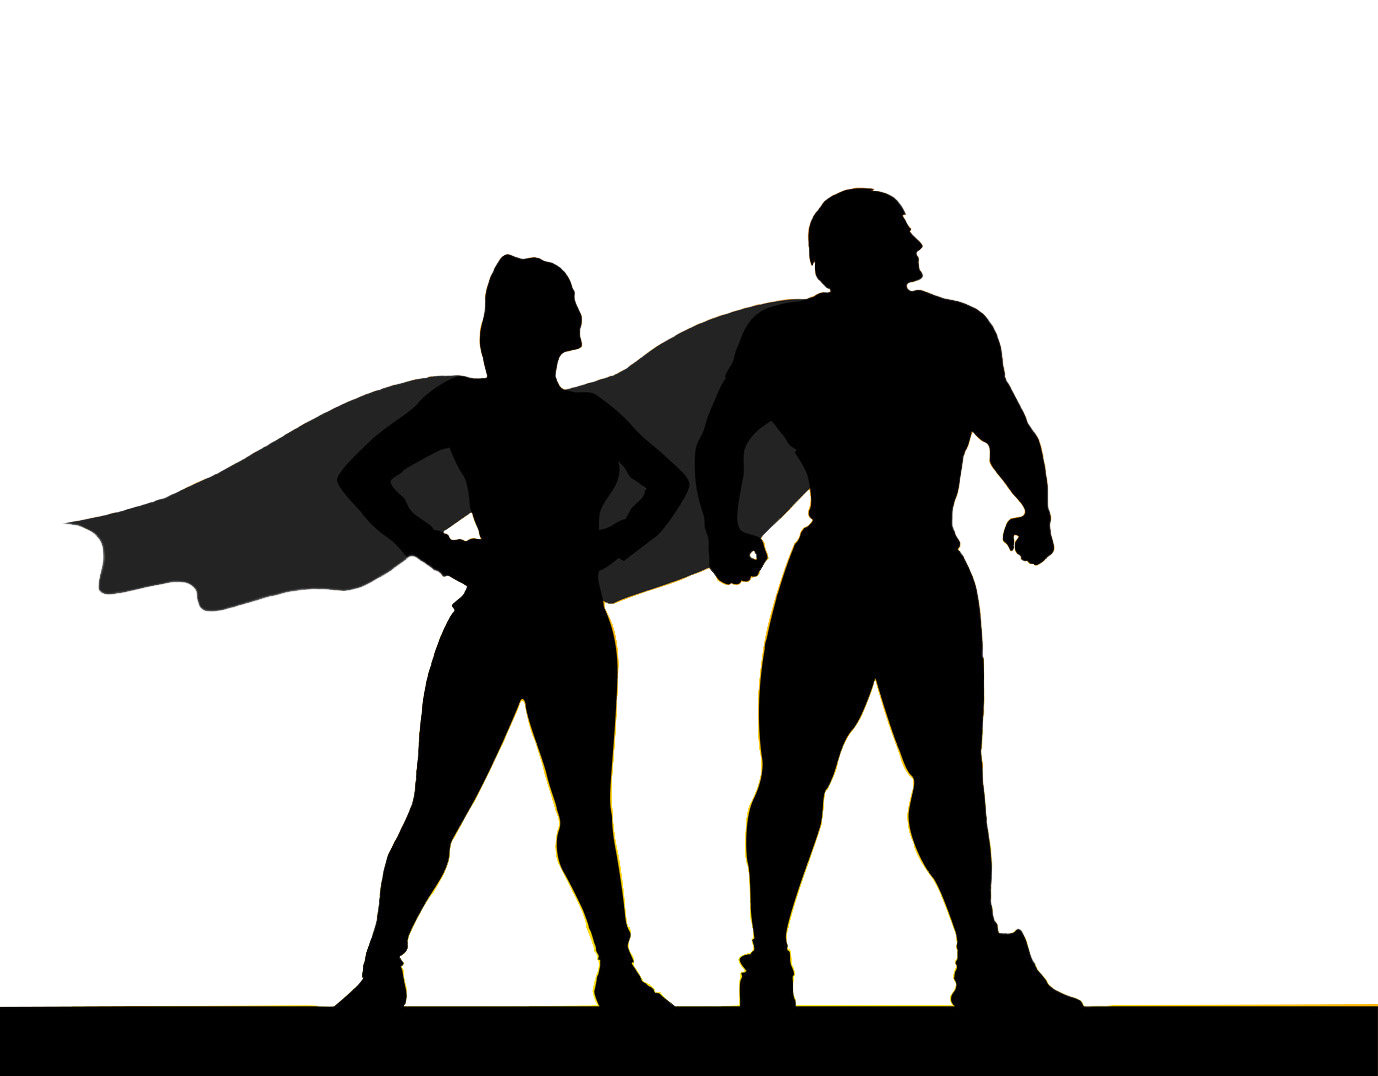 Download hq png image. Doctor clipart hero